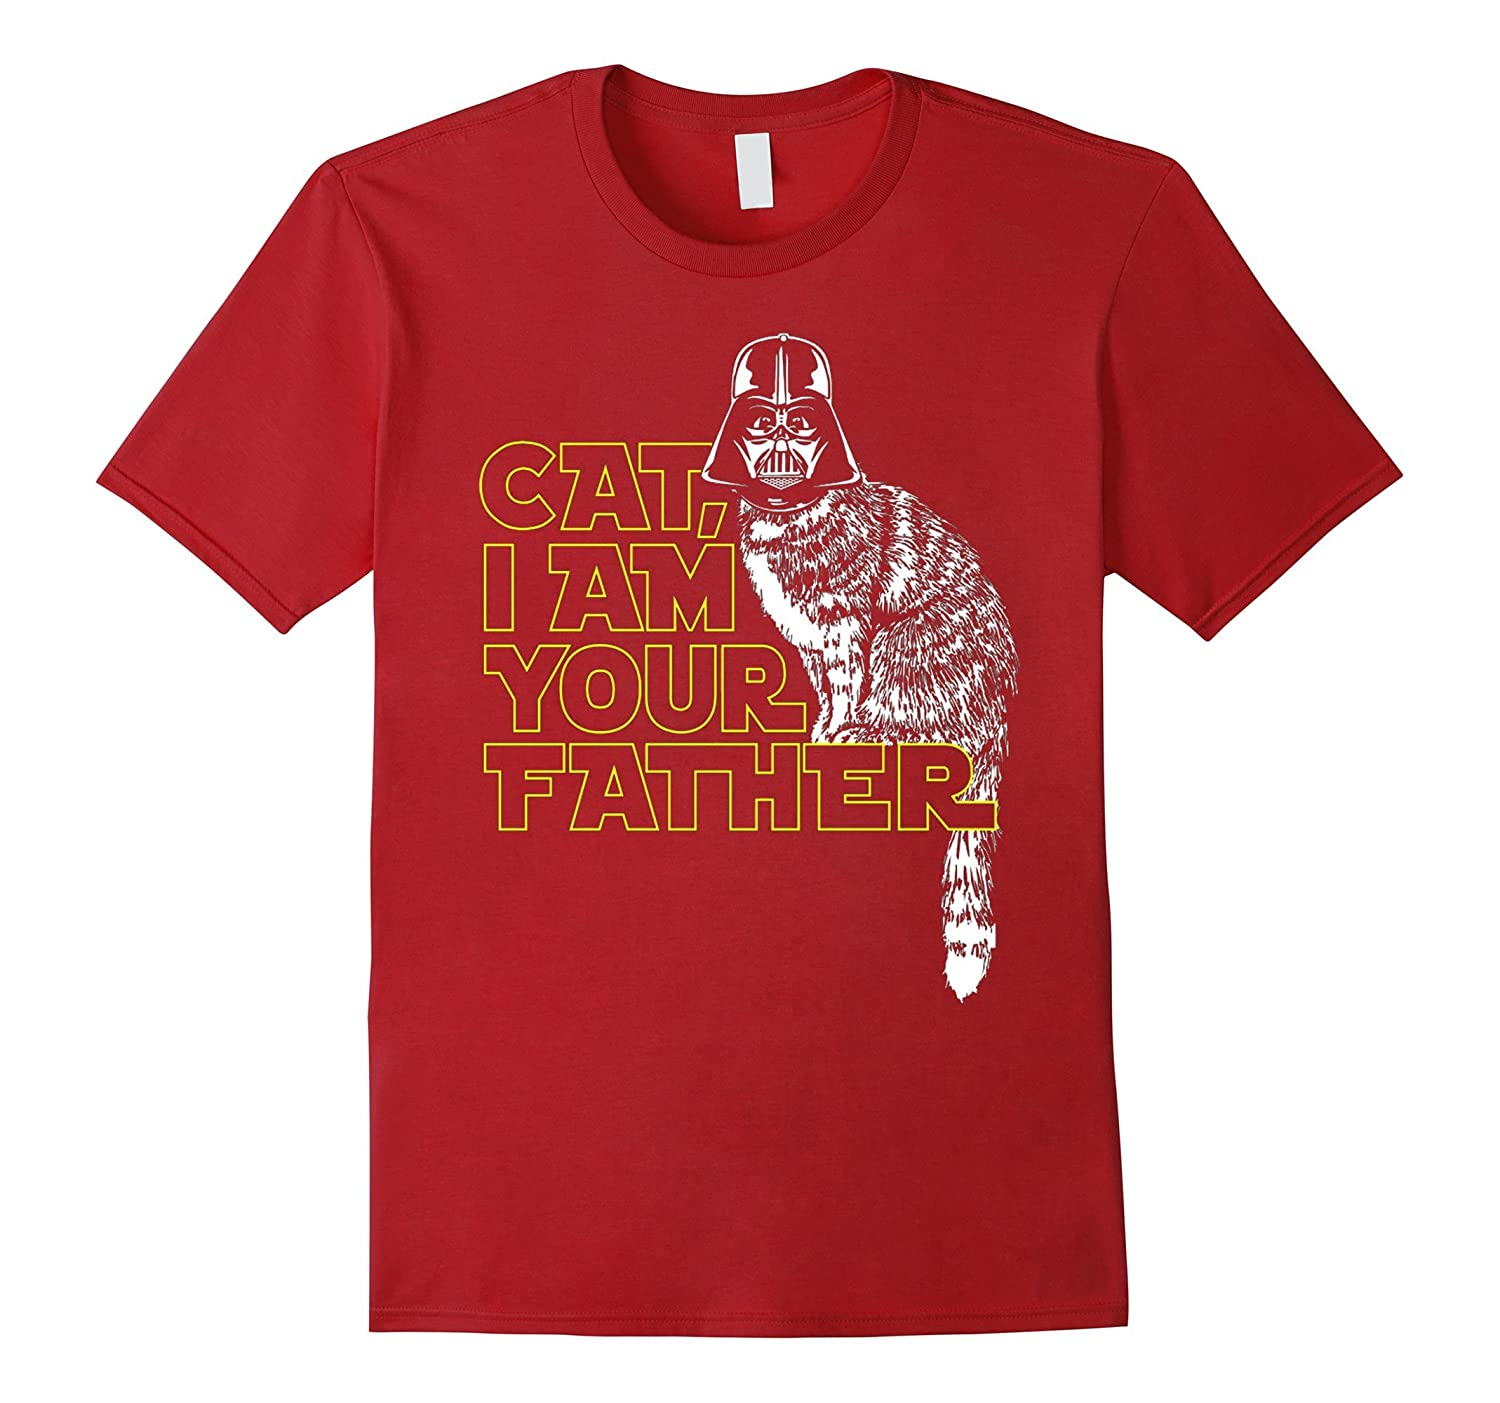 CAT, I AM YOUR FATHER FUNNY TSHIRT